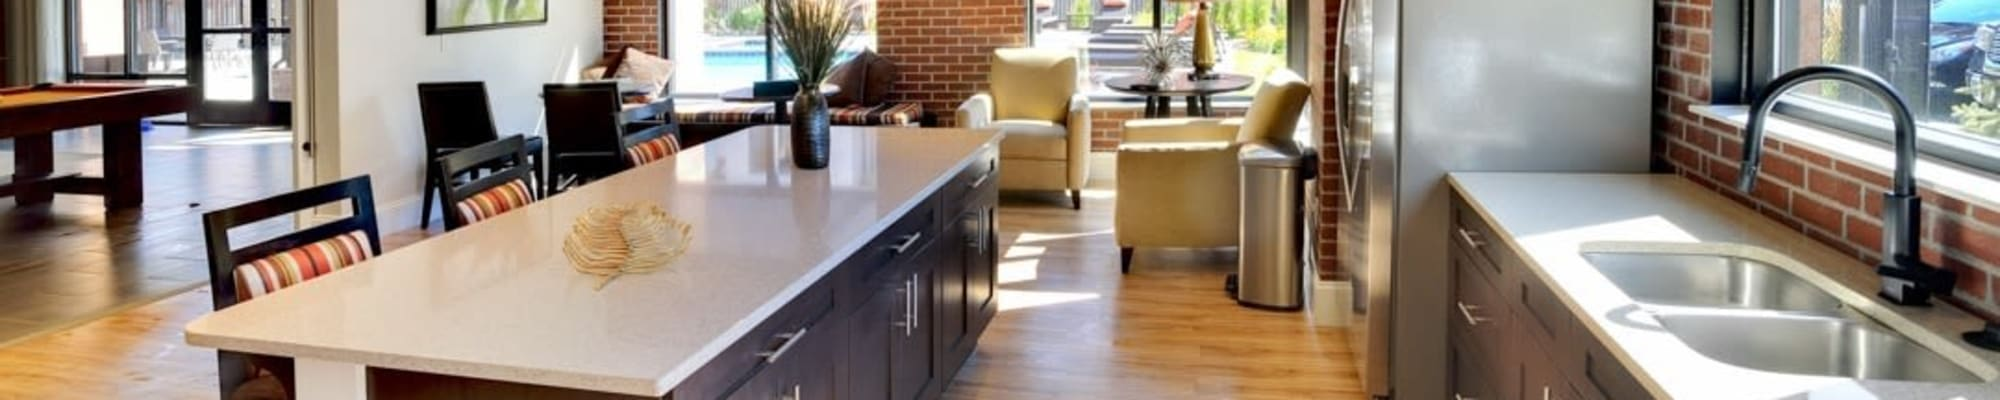 Schedule a tour to see The Parc at Greenwood Village in Greenwood Village, Colorado